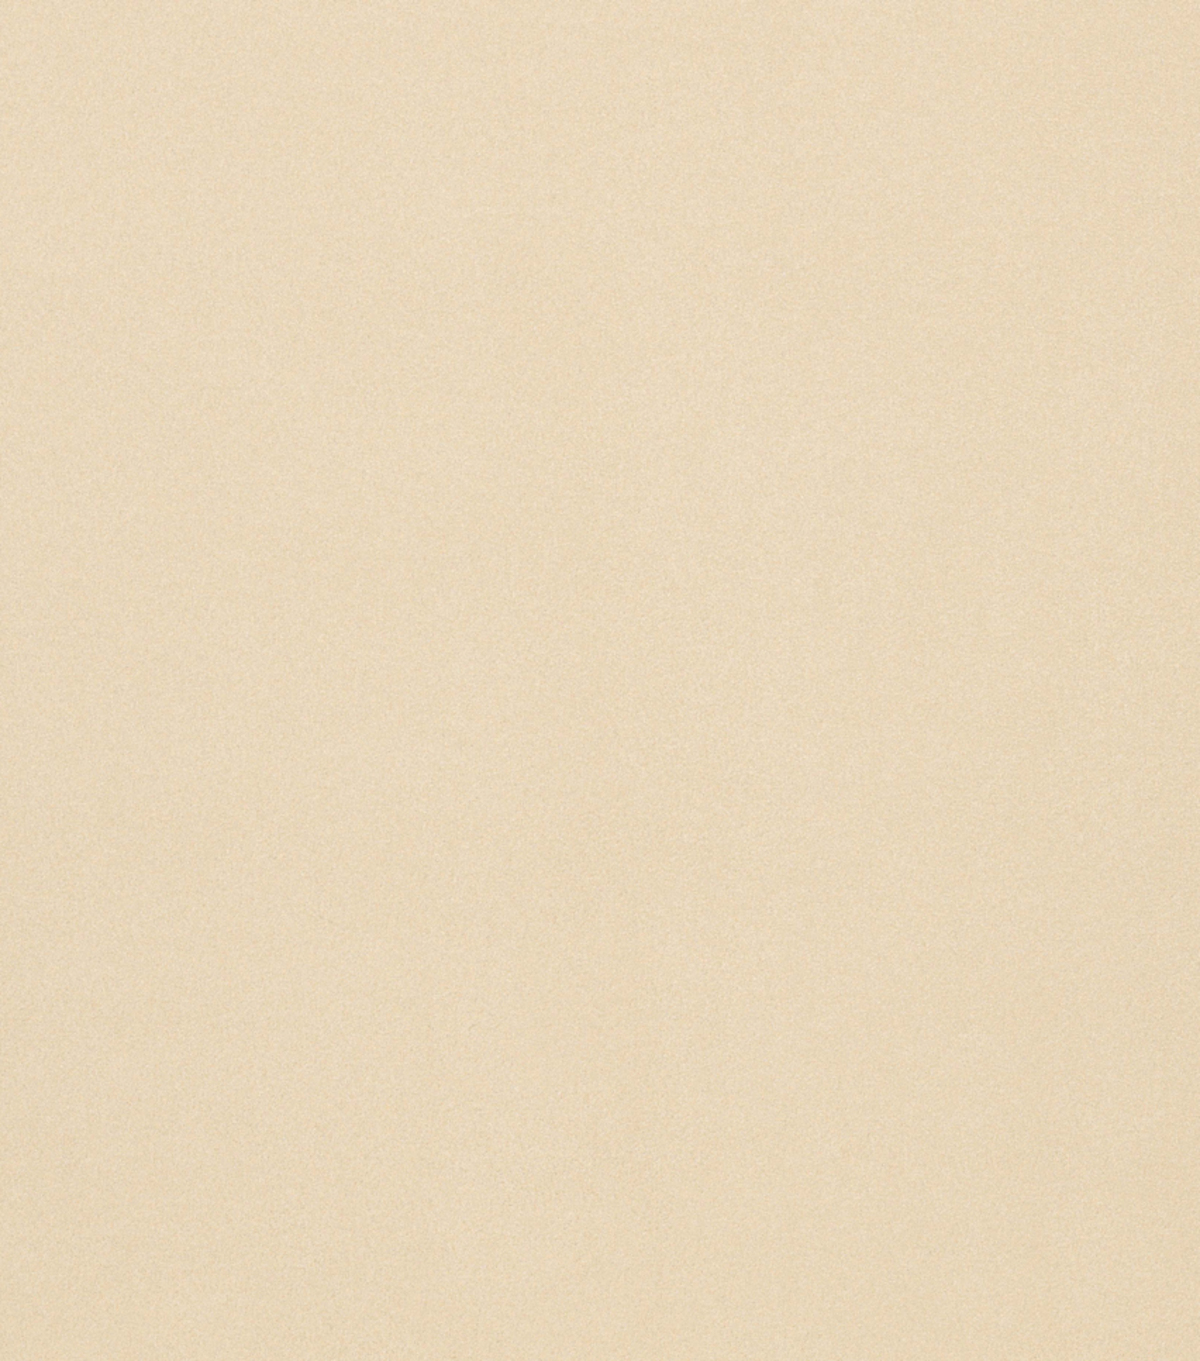 Home Decor 8\u0022x8\u0022 Fabric Swatch-Smart Suede Brown Rice